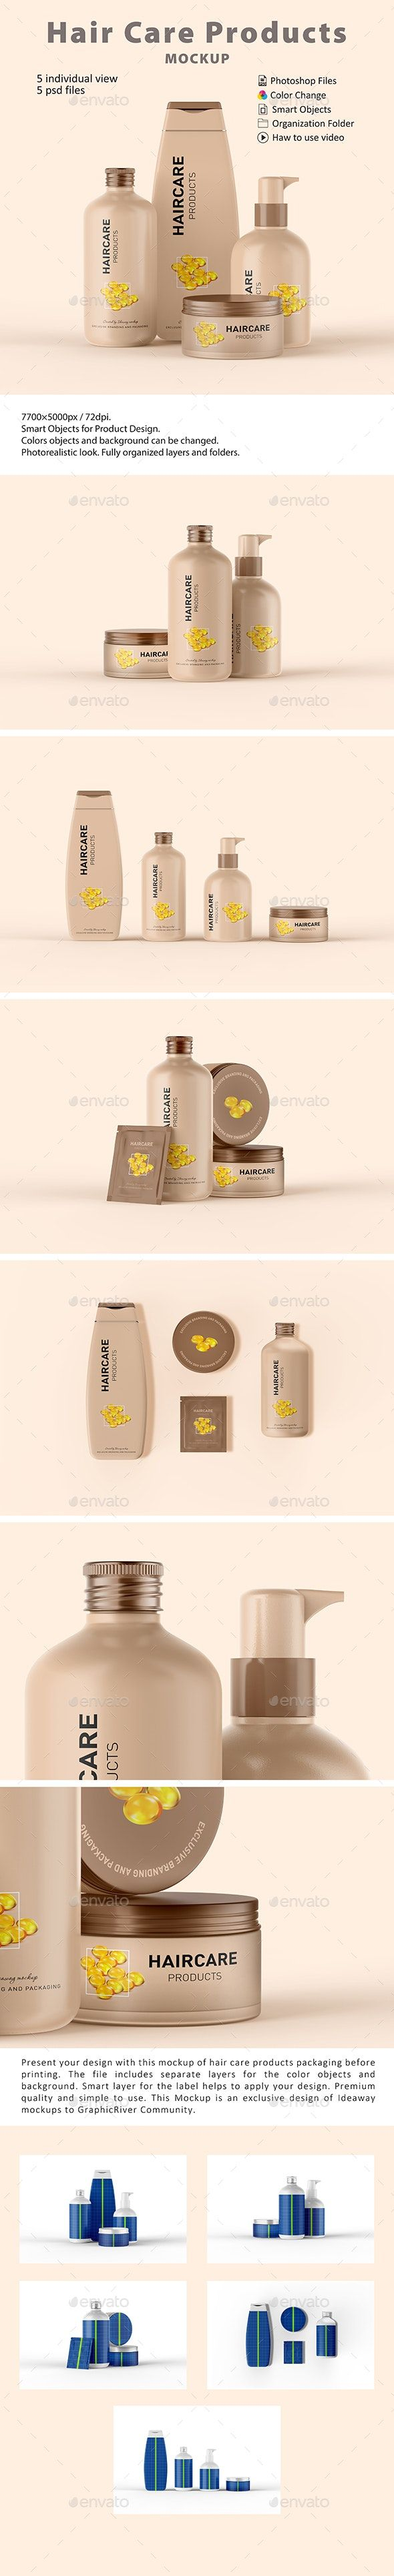 Cosmetic Hair Care Products Mockup Hair Care Products Professional Hair Care Cosmetics Mockup